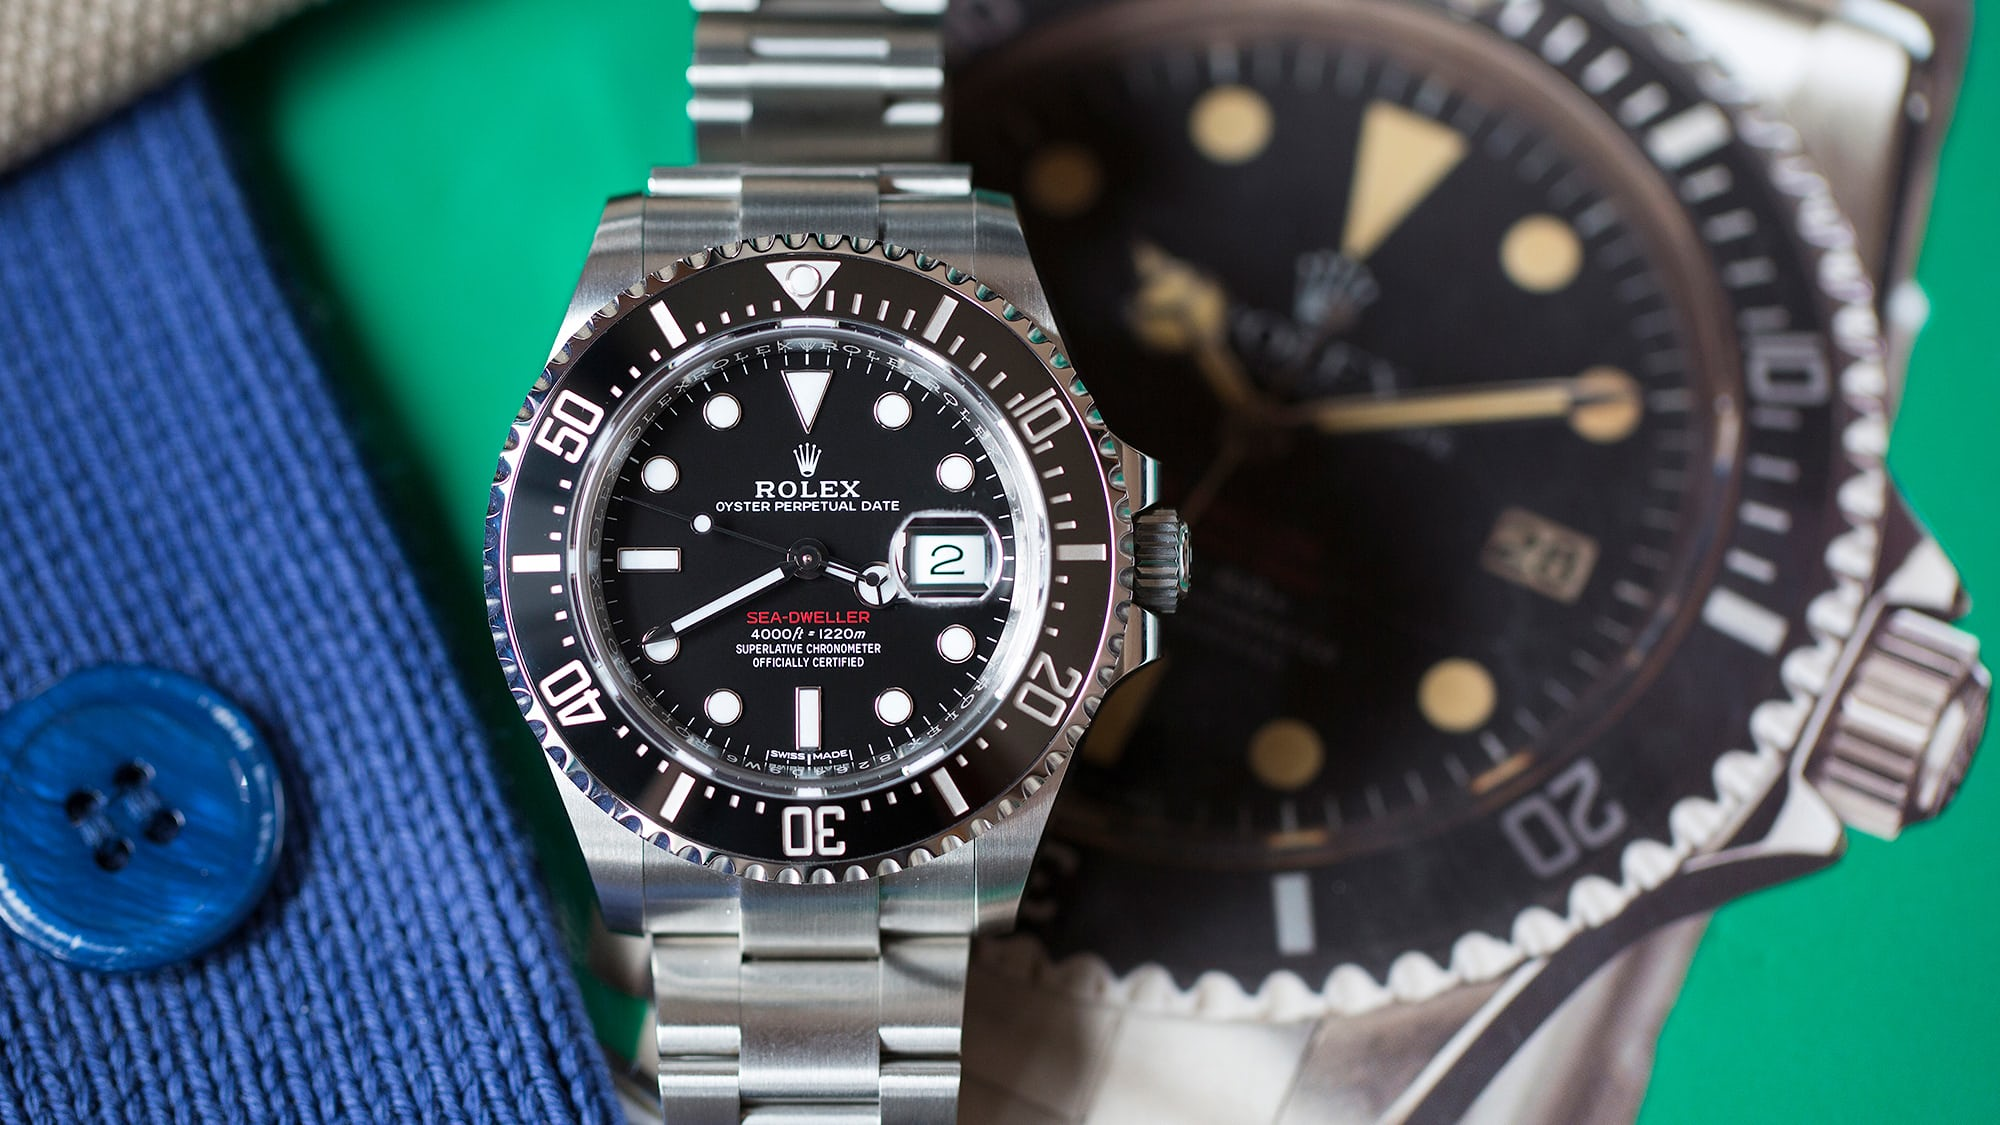 freeks a watch kind dive watches orca of image one this report